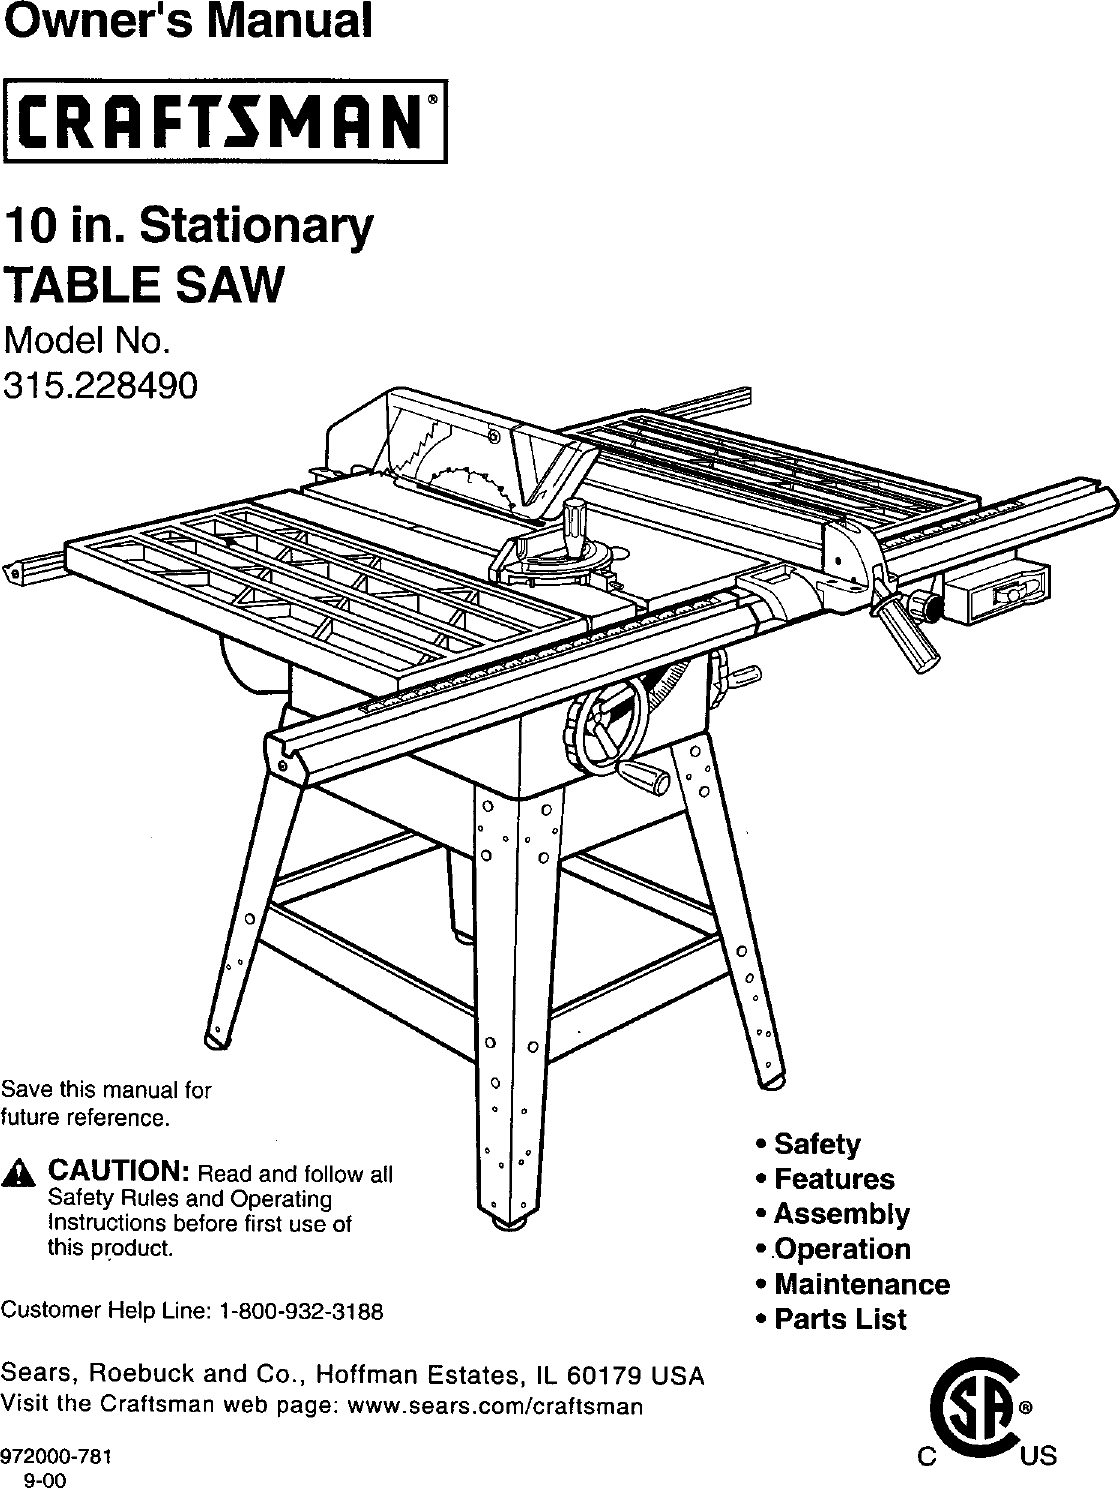 Craftsman 315228490 User Manual TABLE SAW Manuals And